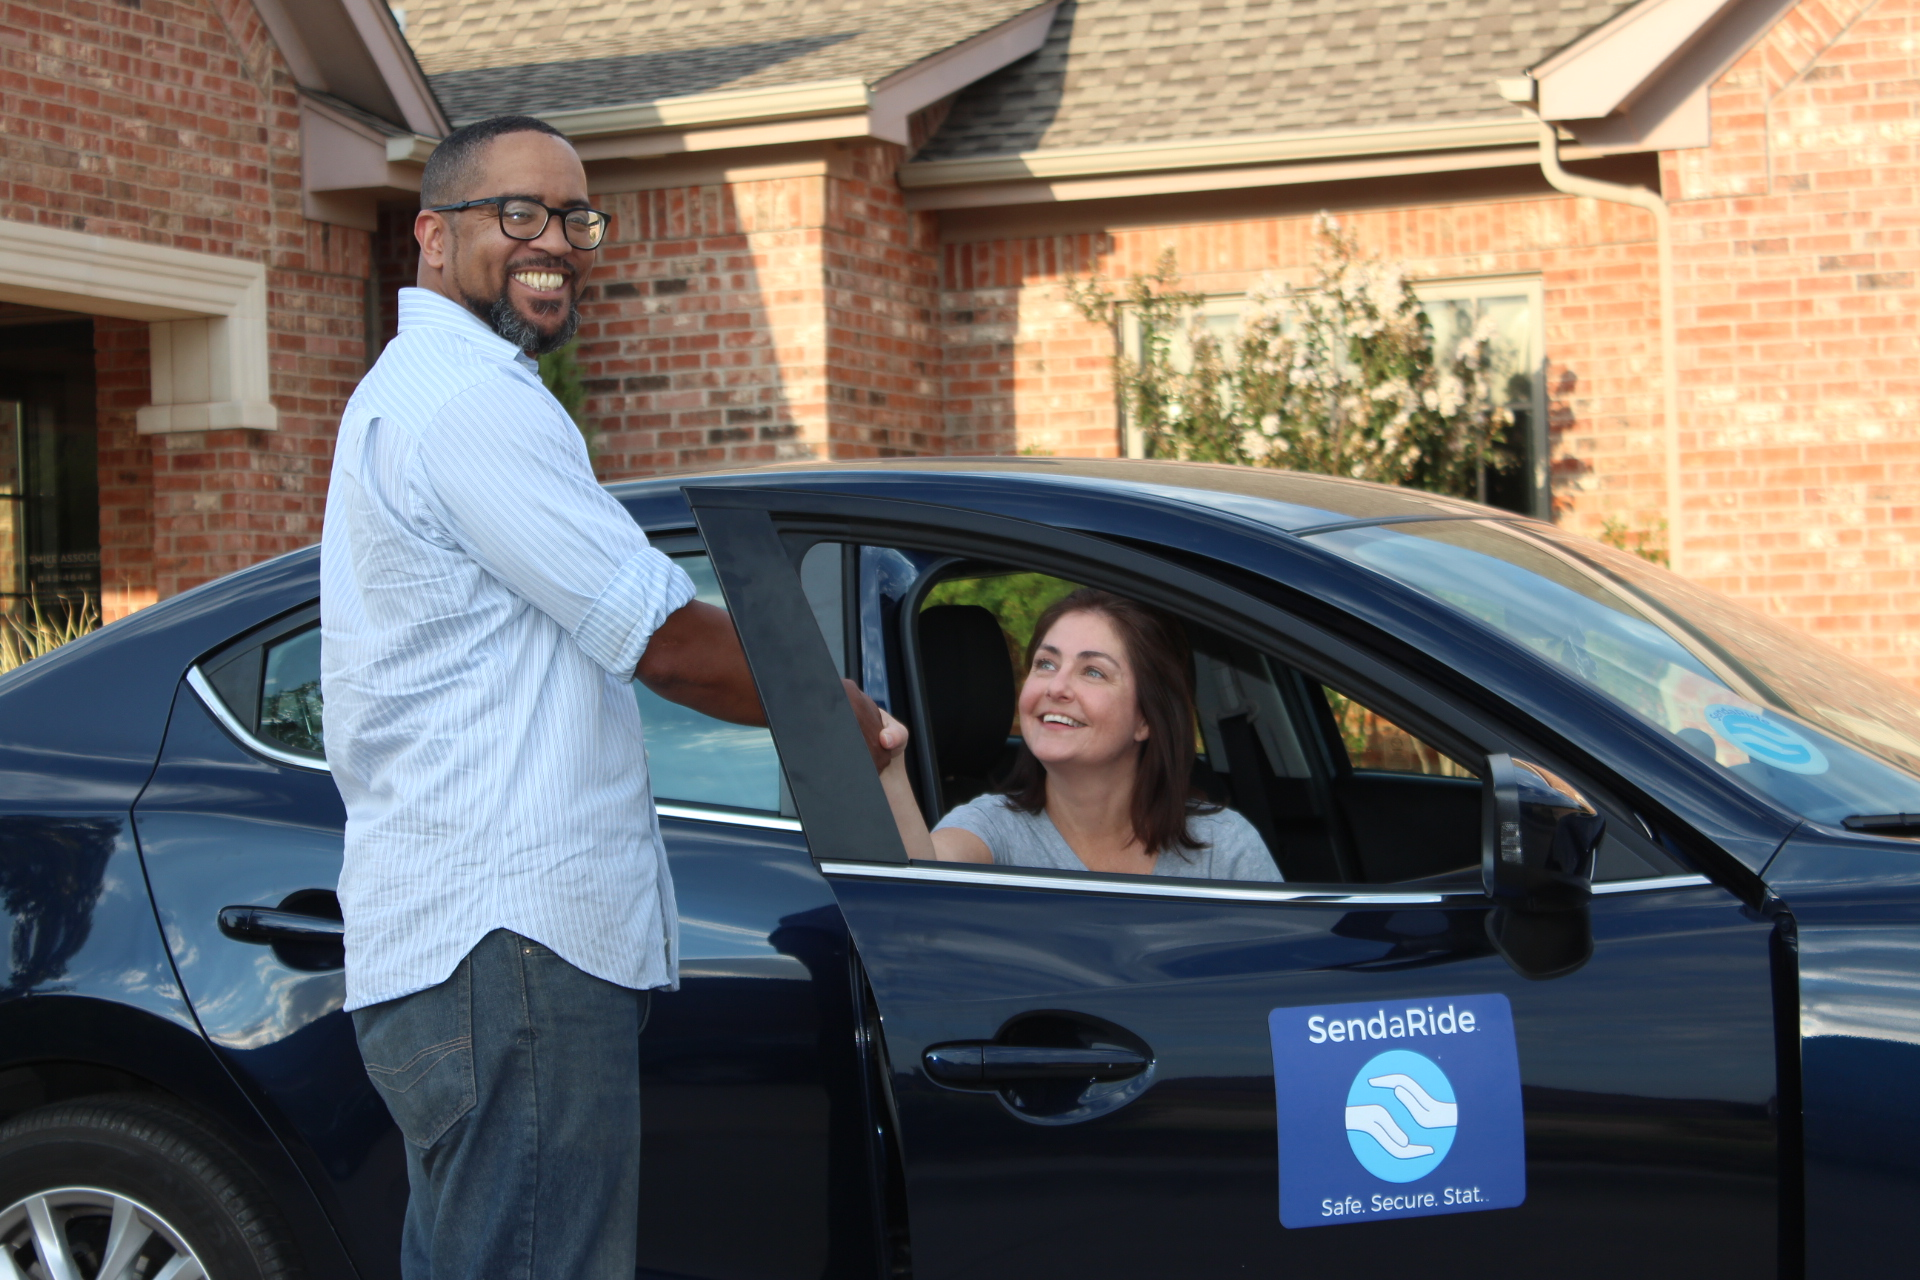 SendaRide provides customized, concierge transportation